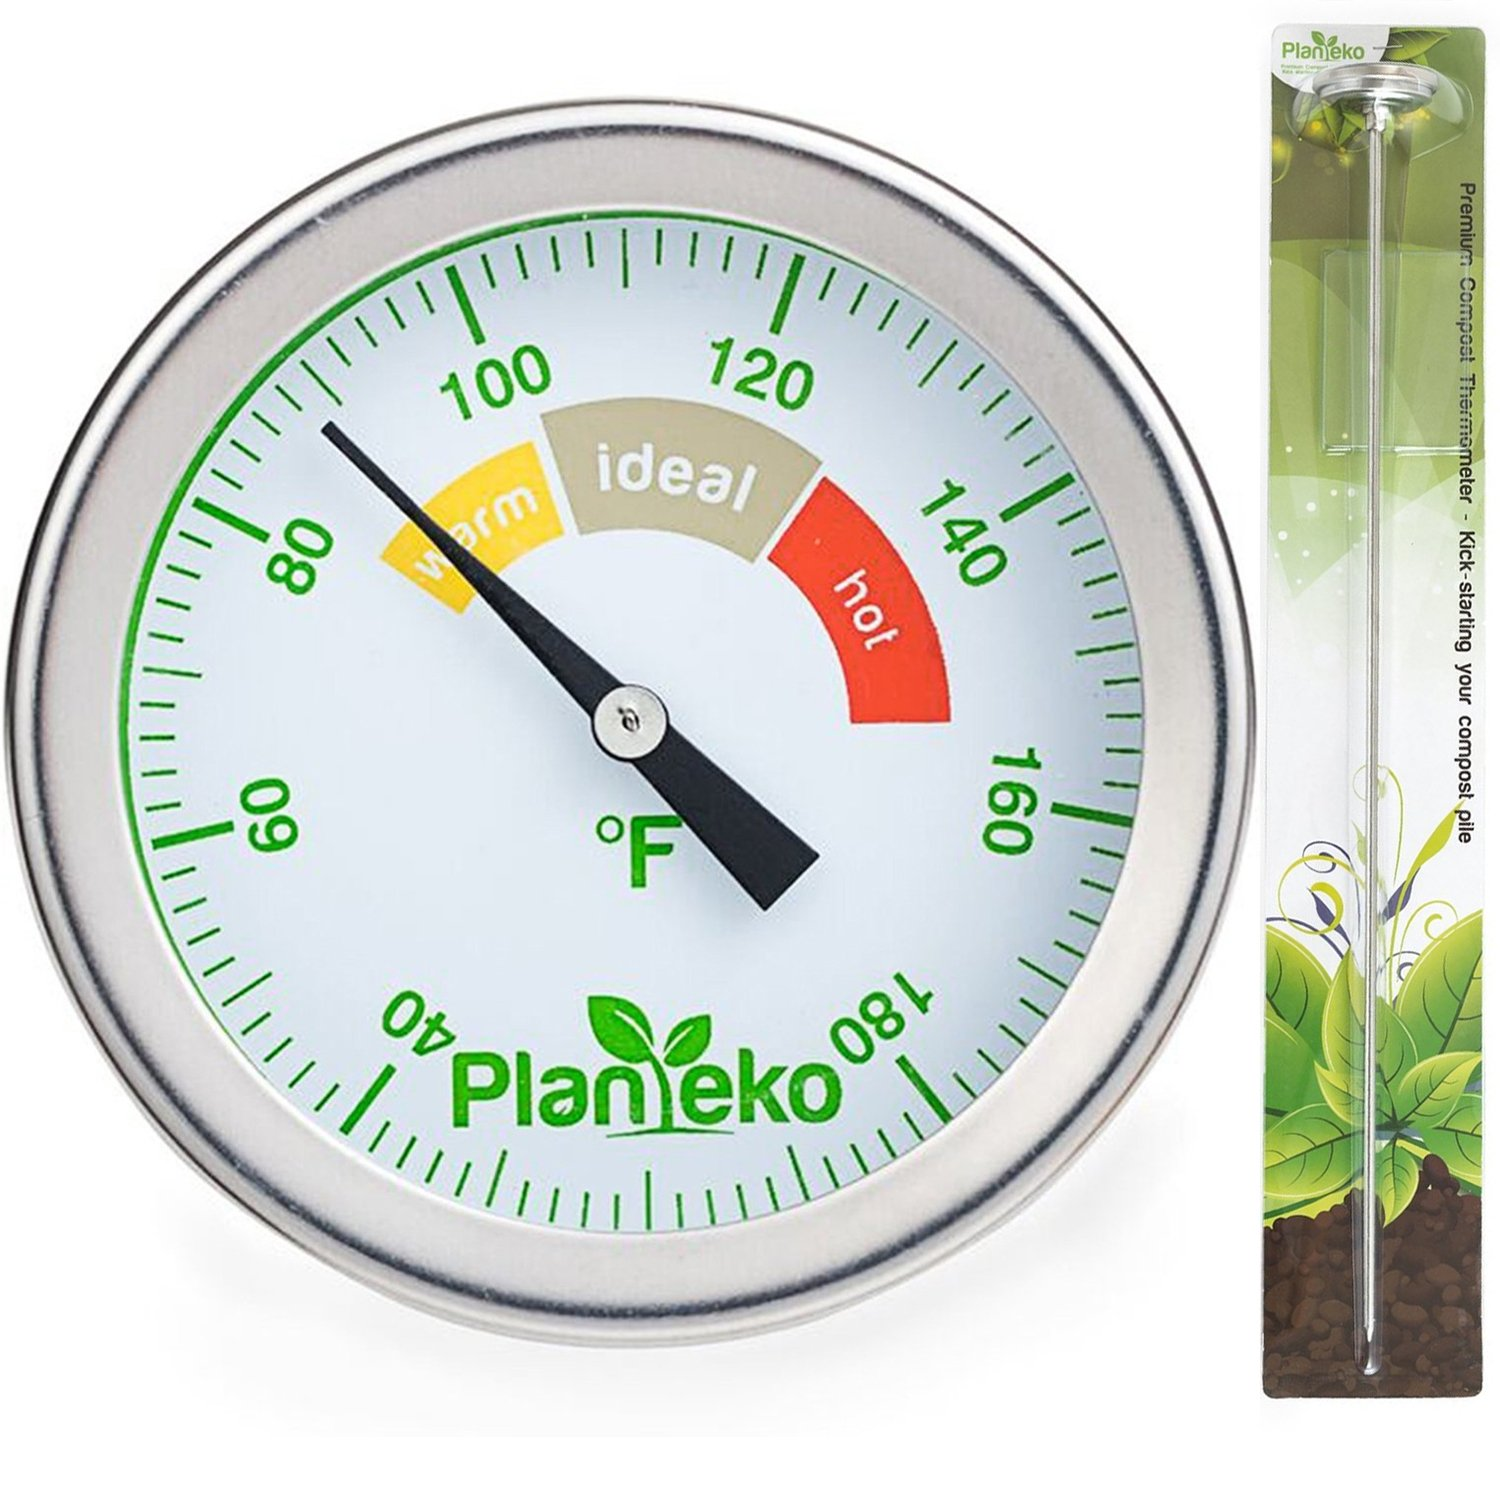 Planteko Compost Thermometer - Stainless Steel Soil Thermometer Extra Thick Probe - Color Coded Fahrenheit Dial - Long 20 Inch Stem - Composting Guide included